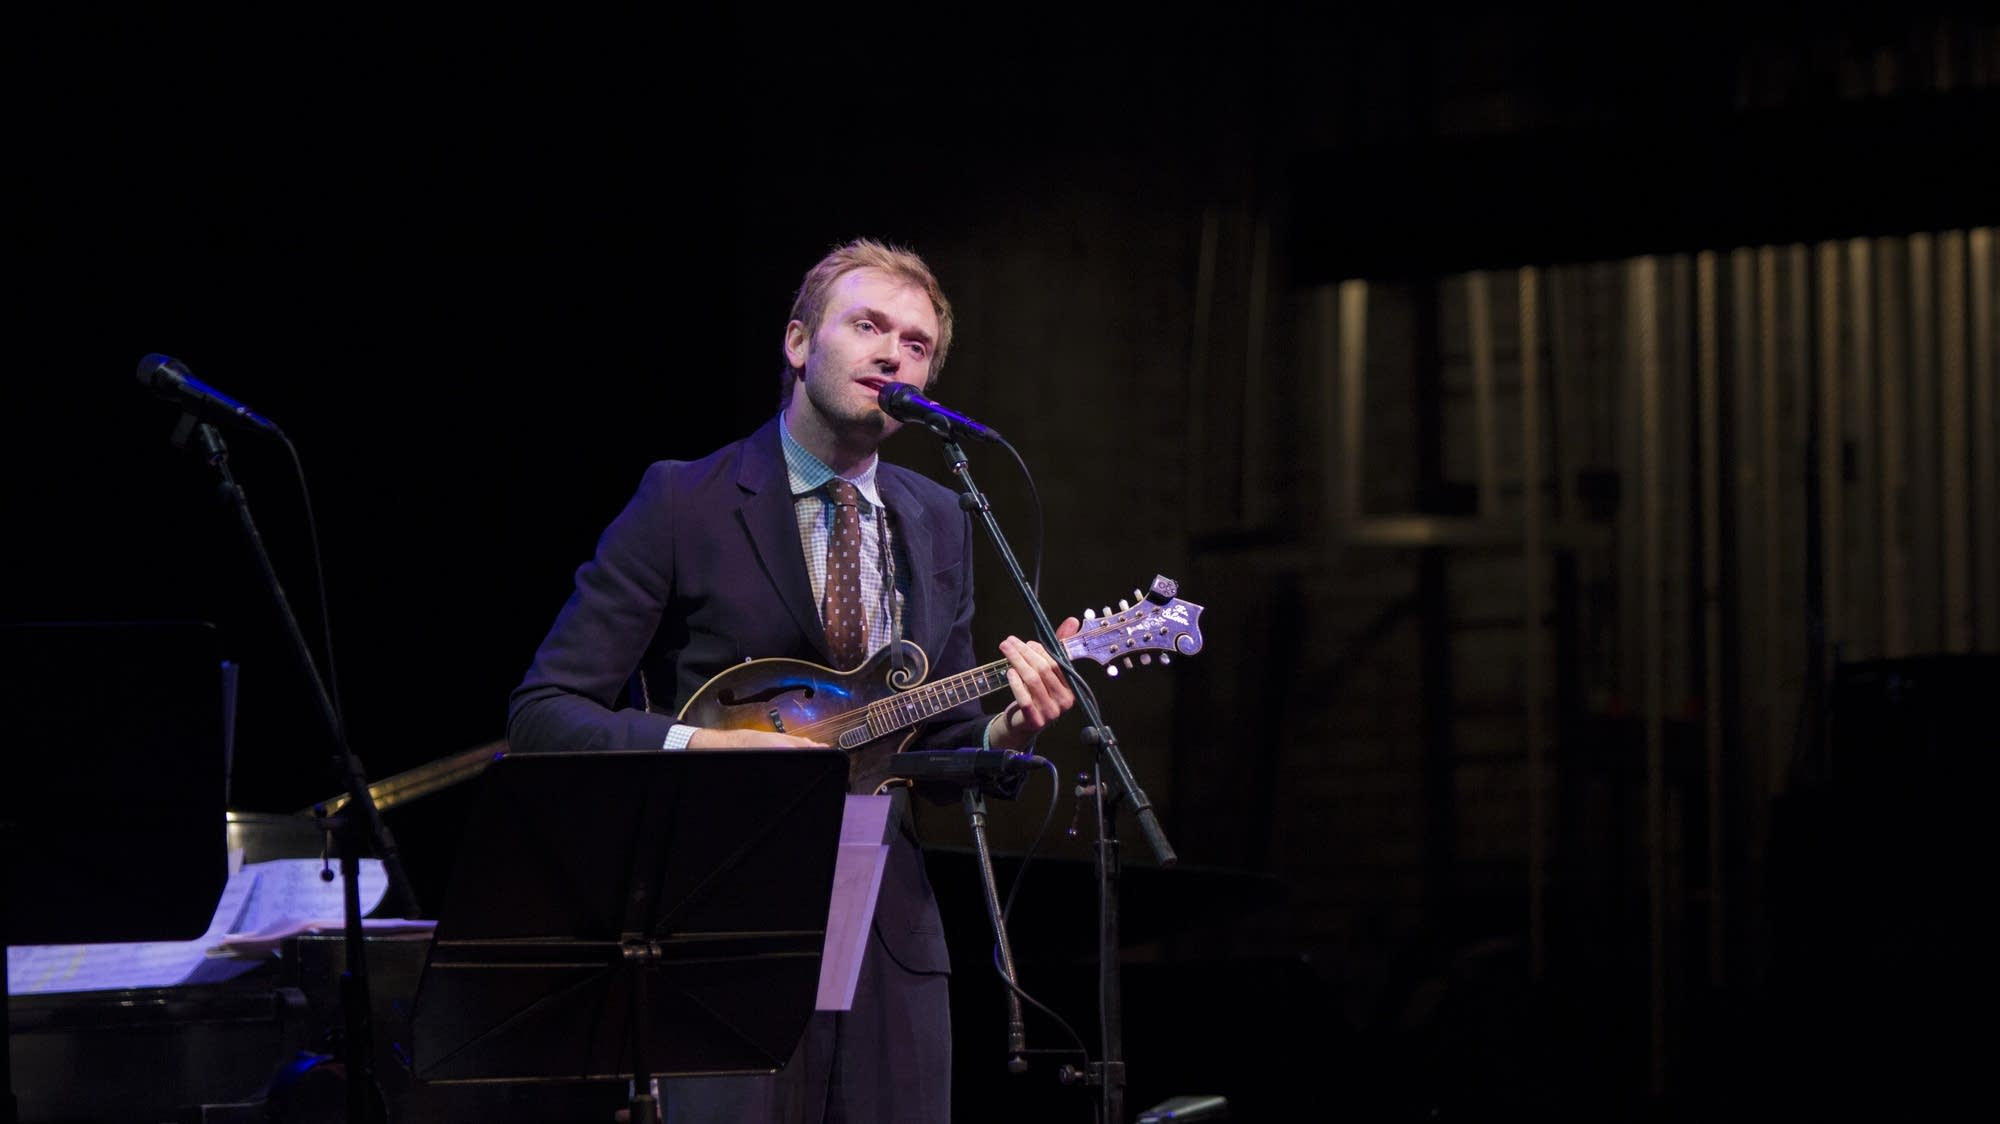 Your host, Chris Thile